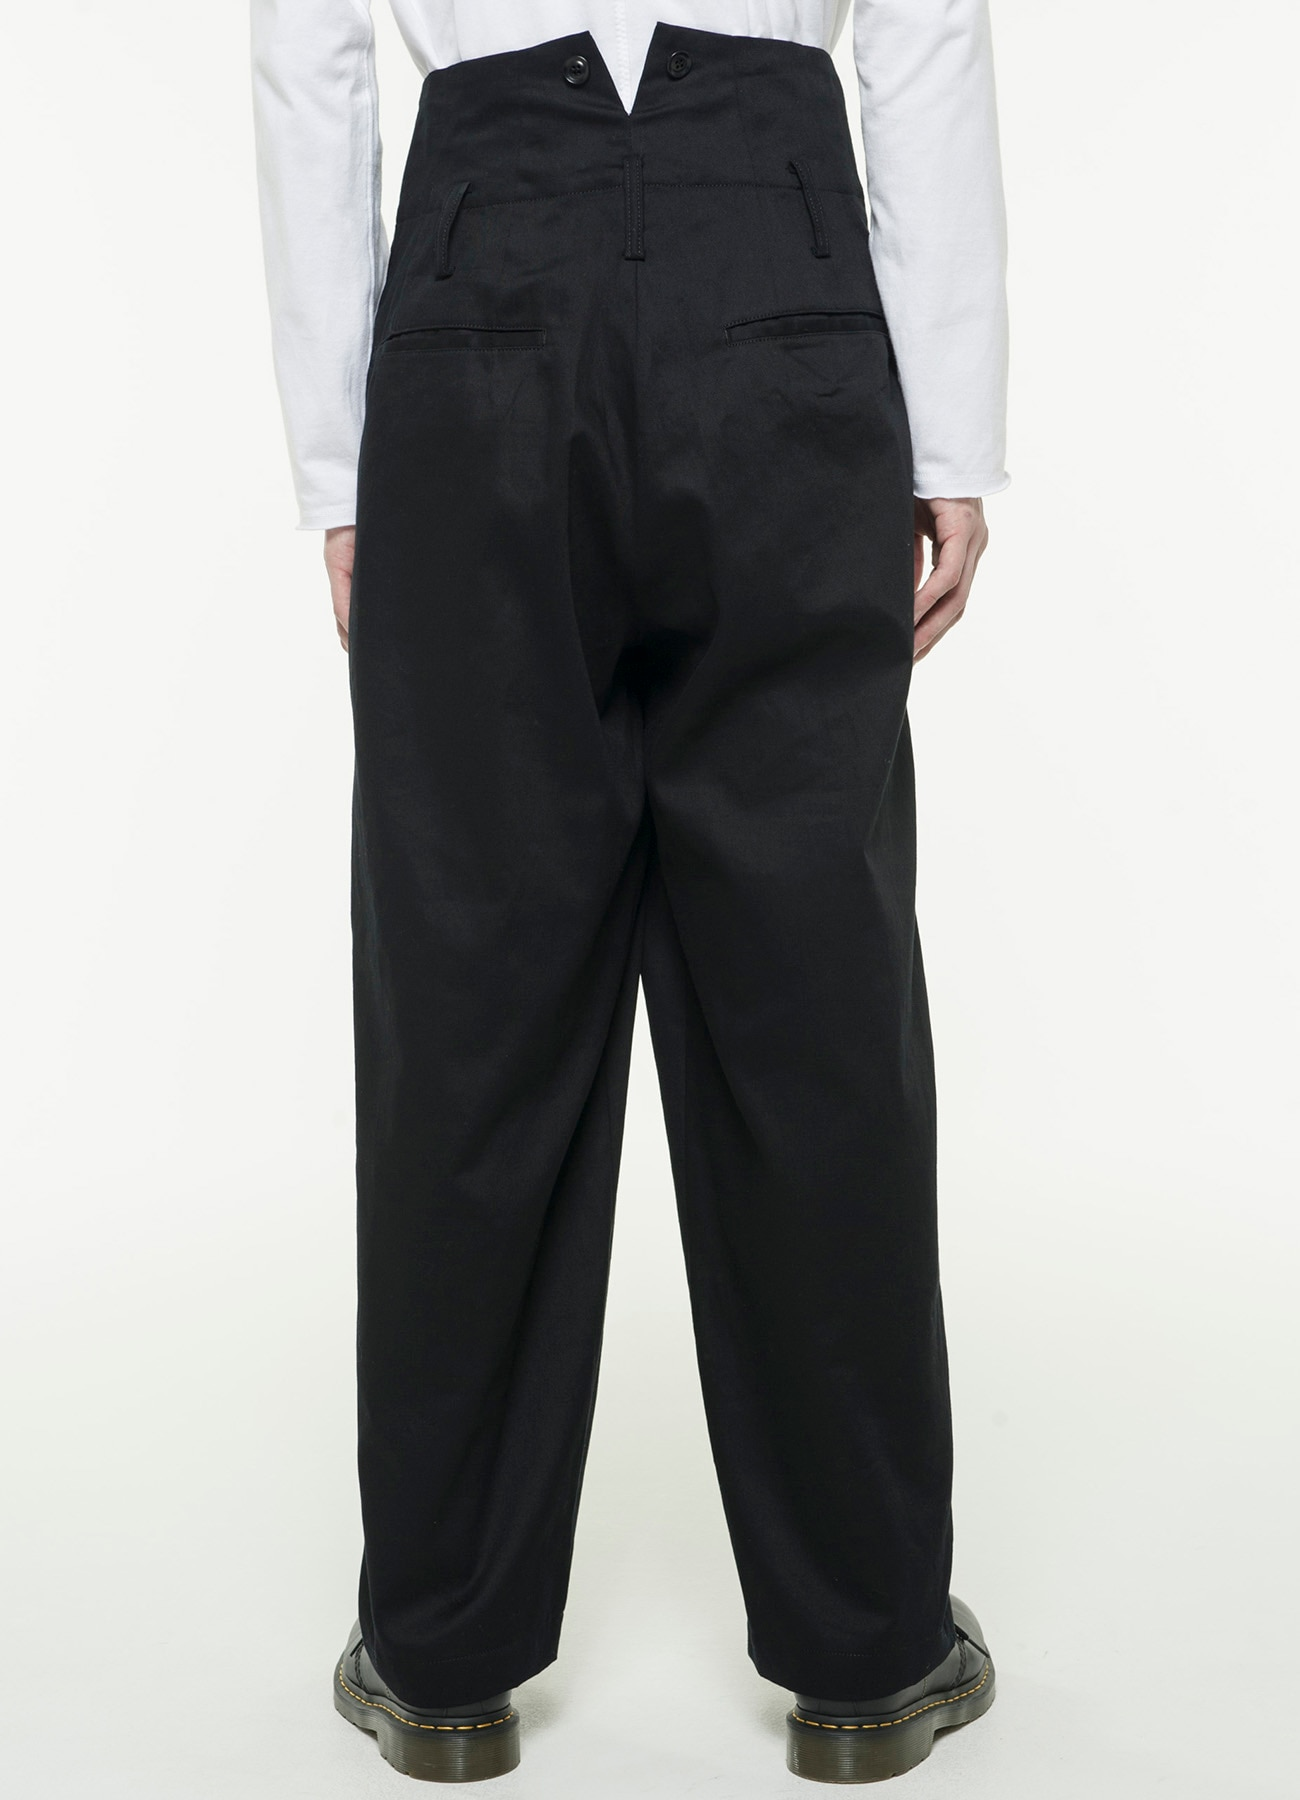 20 / Cotton Twill 3 Tuck HighWaist Wide Suspenders Pants